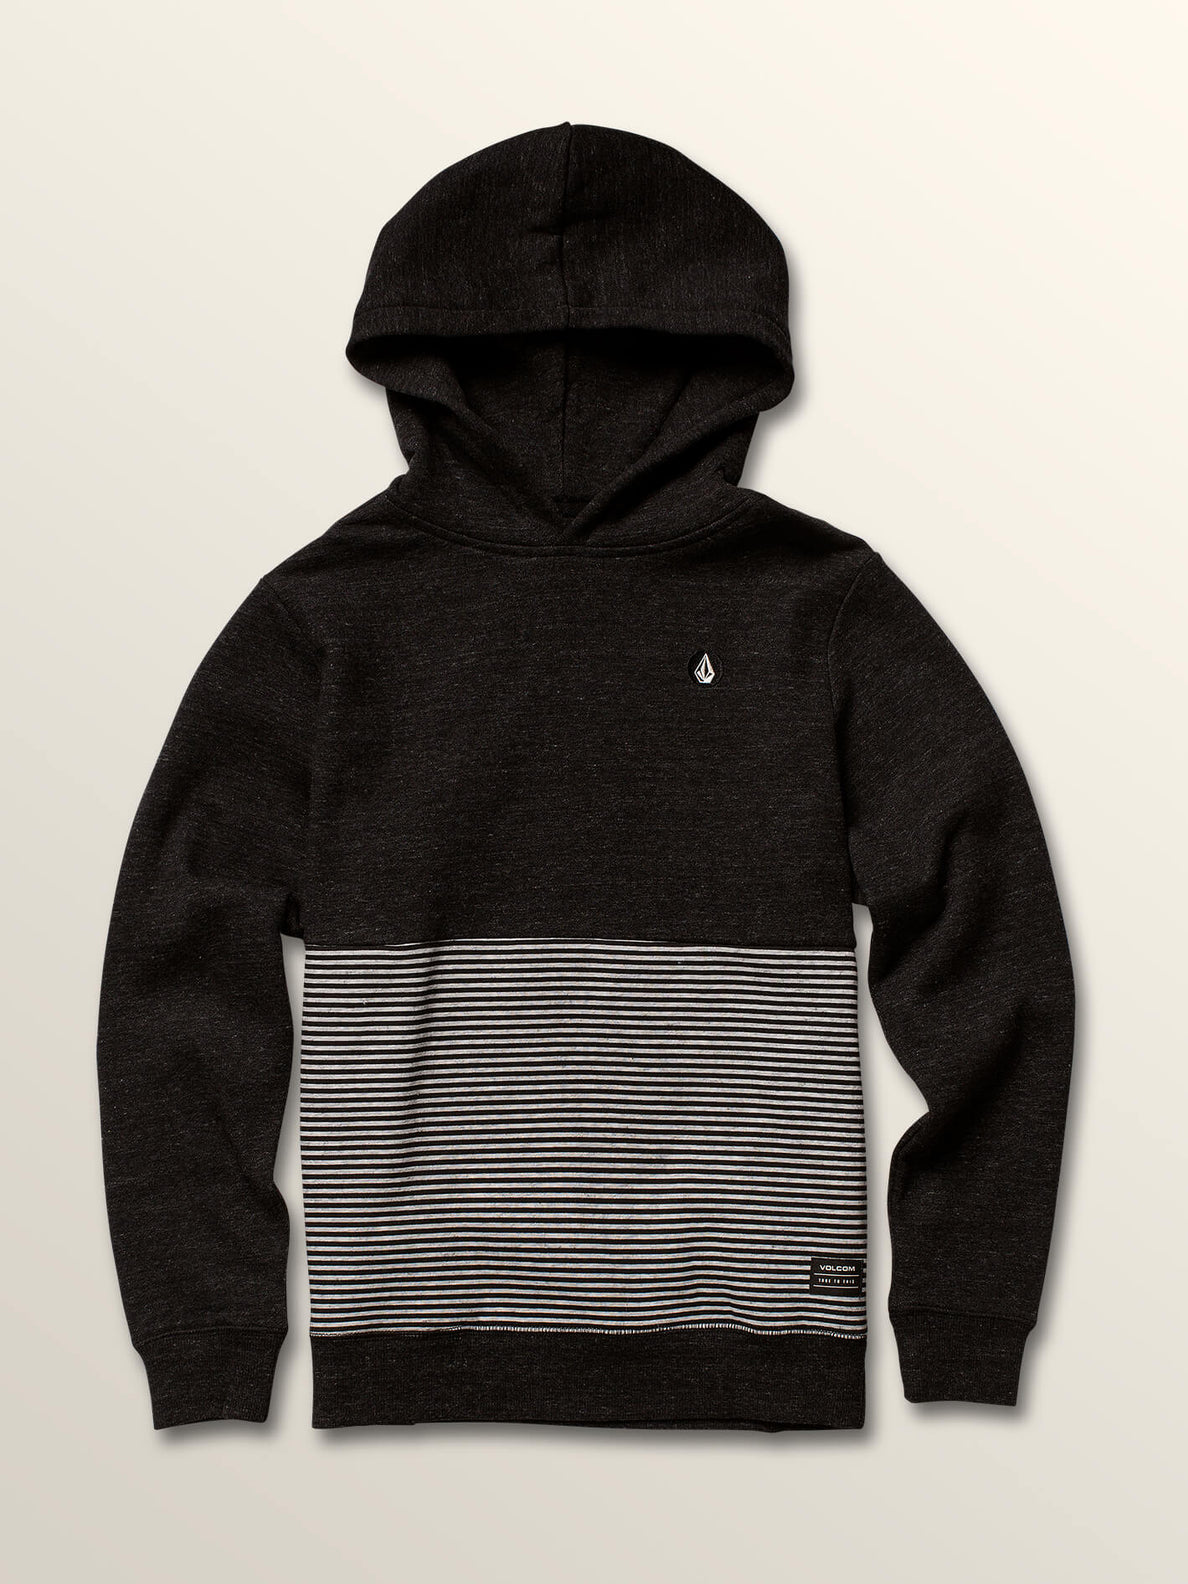 Big Boys Maddock Pullover Hoodie In Asphalt Black, Front View